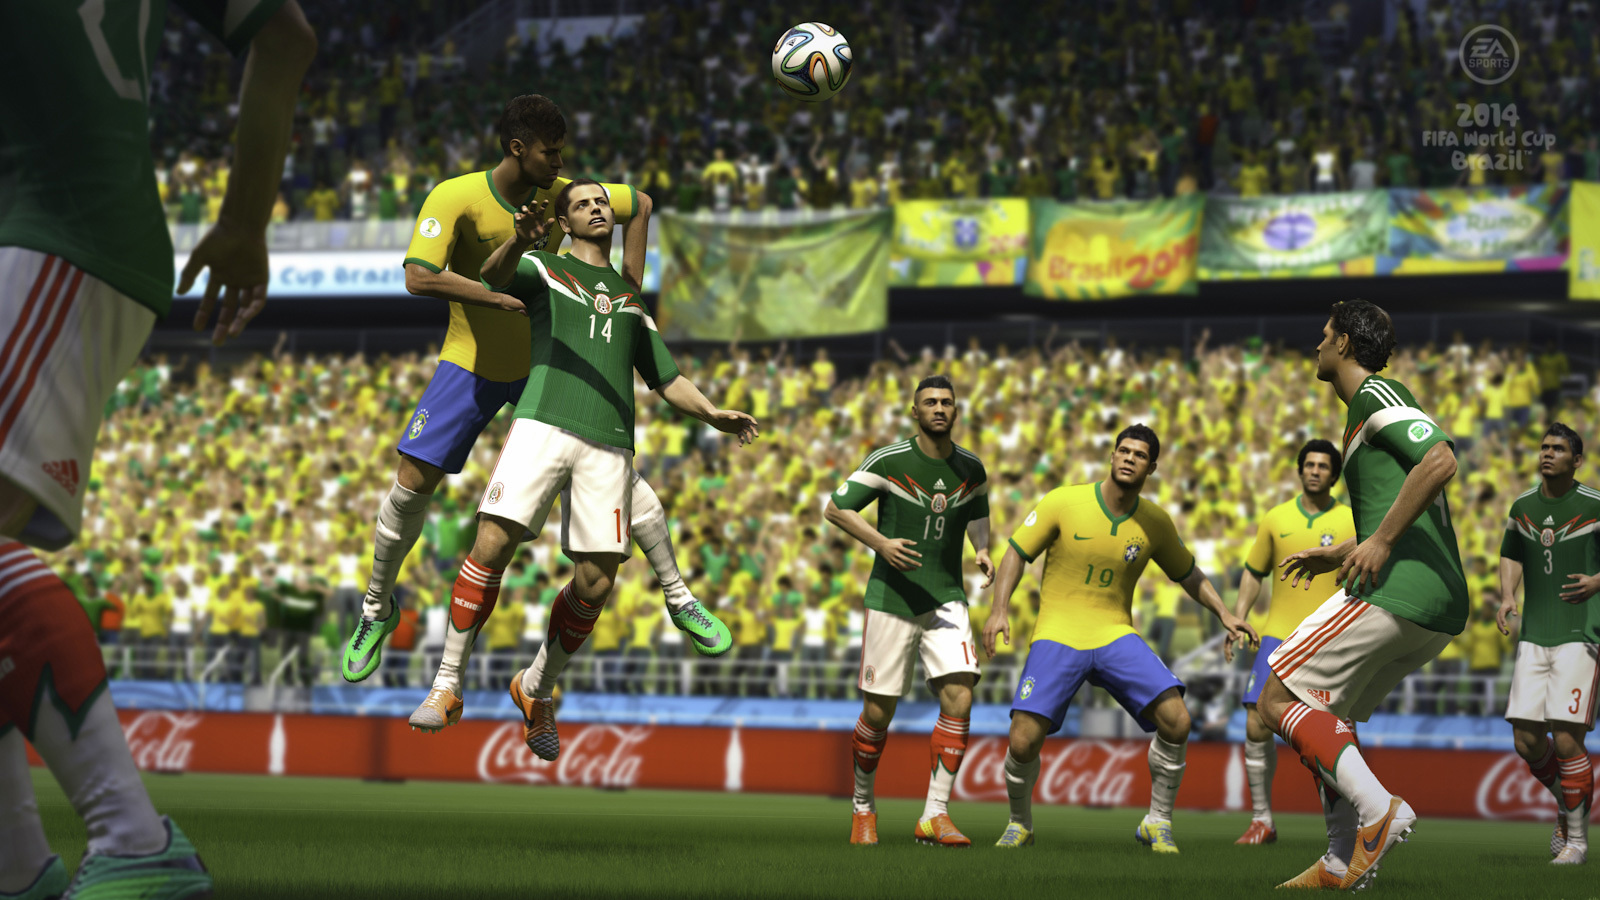 fifa world cup 2014 game pc free download full version